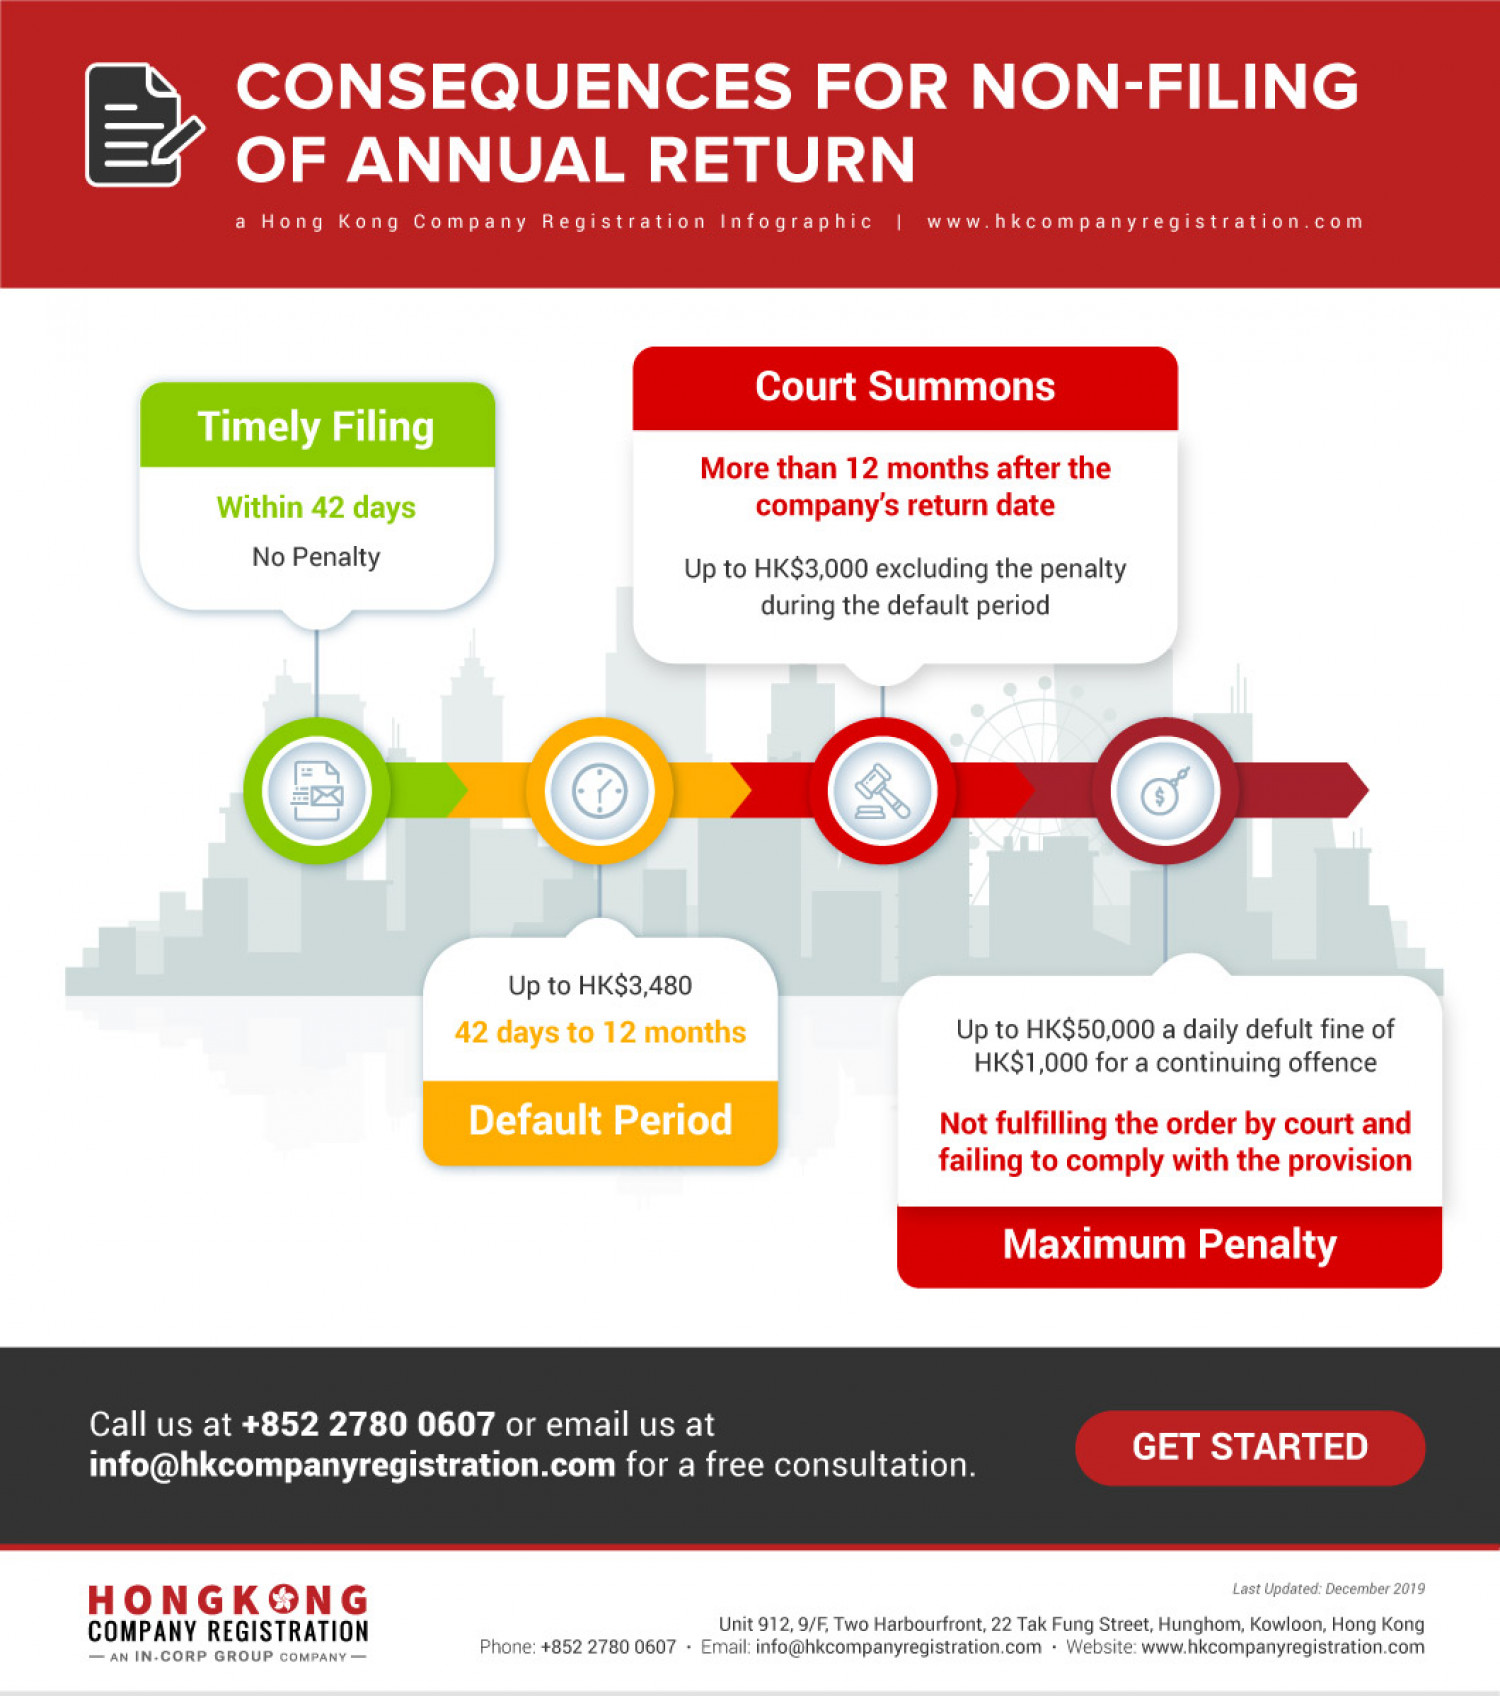 What are the consequences for non-filing of annual return in Hong Kong? Infographic